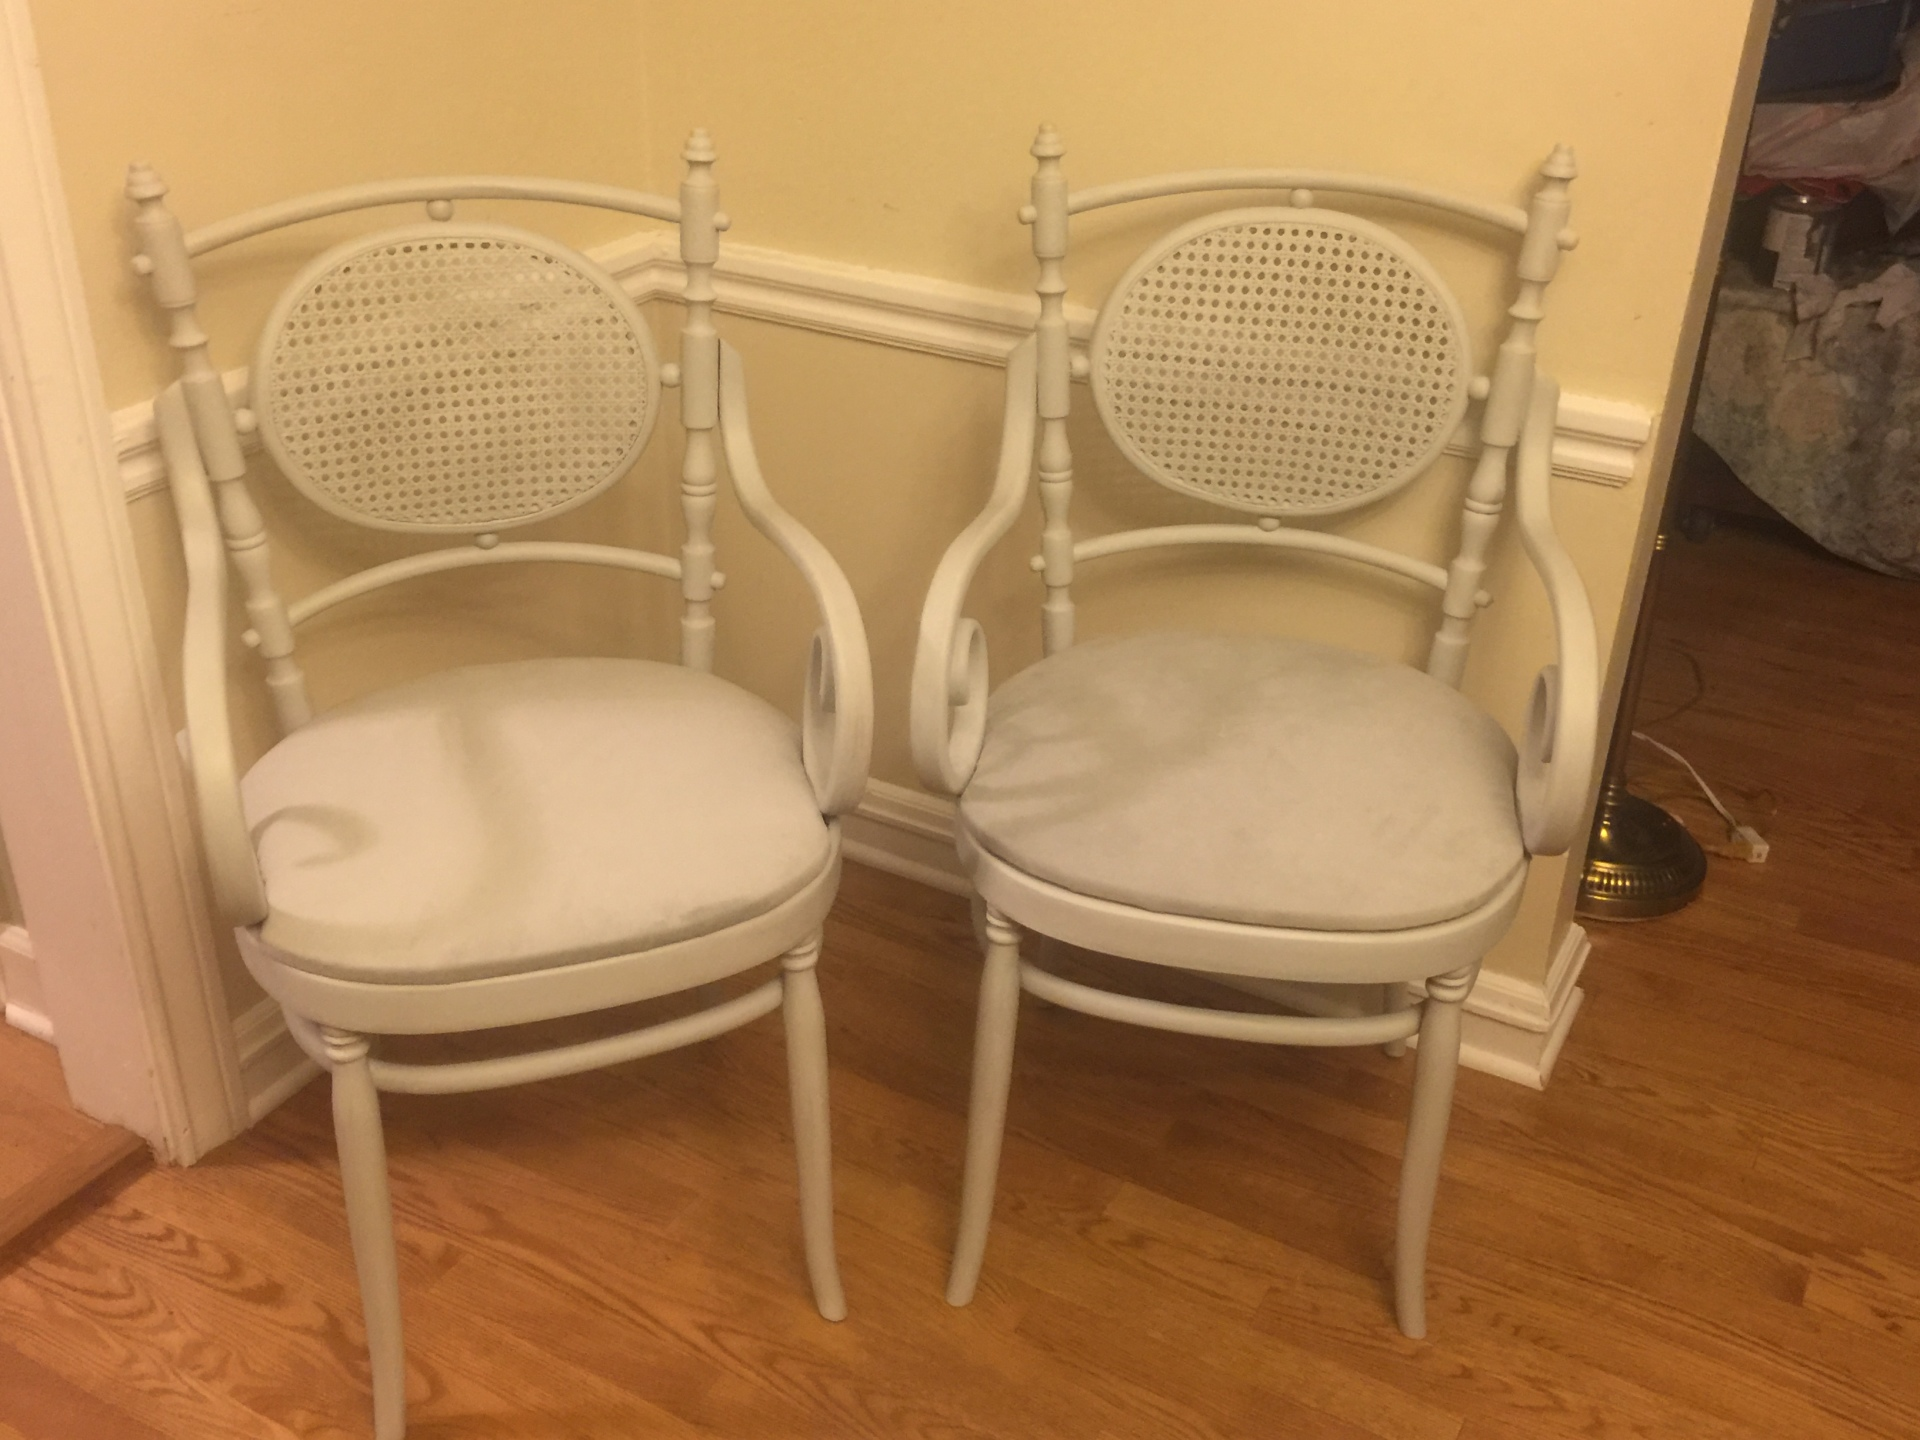 Vintage Chairs - Light Gray $85/pair